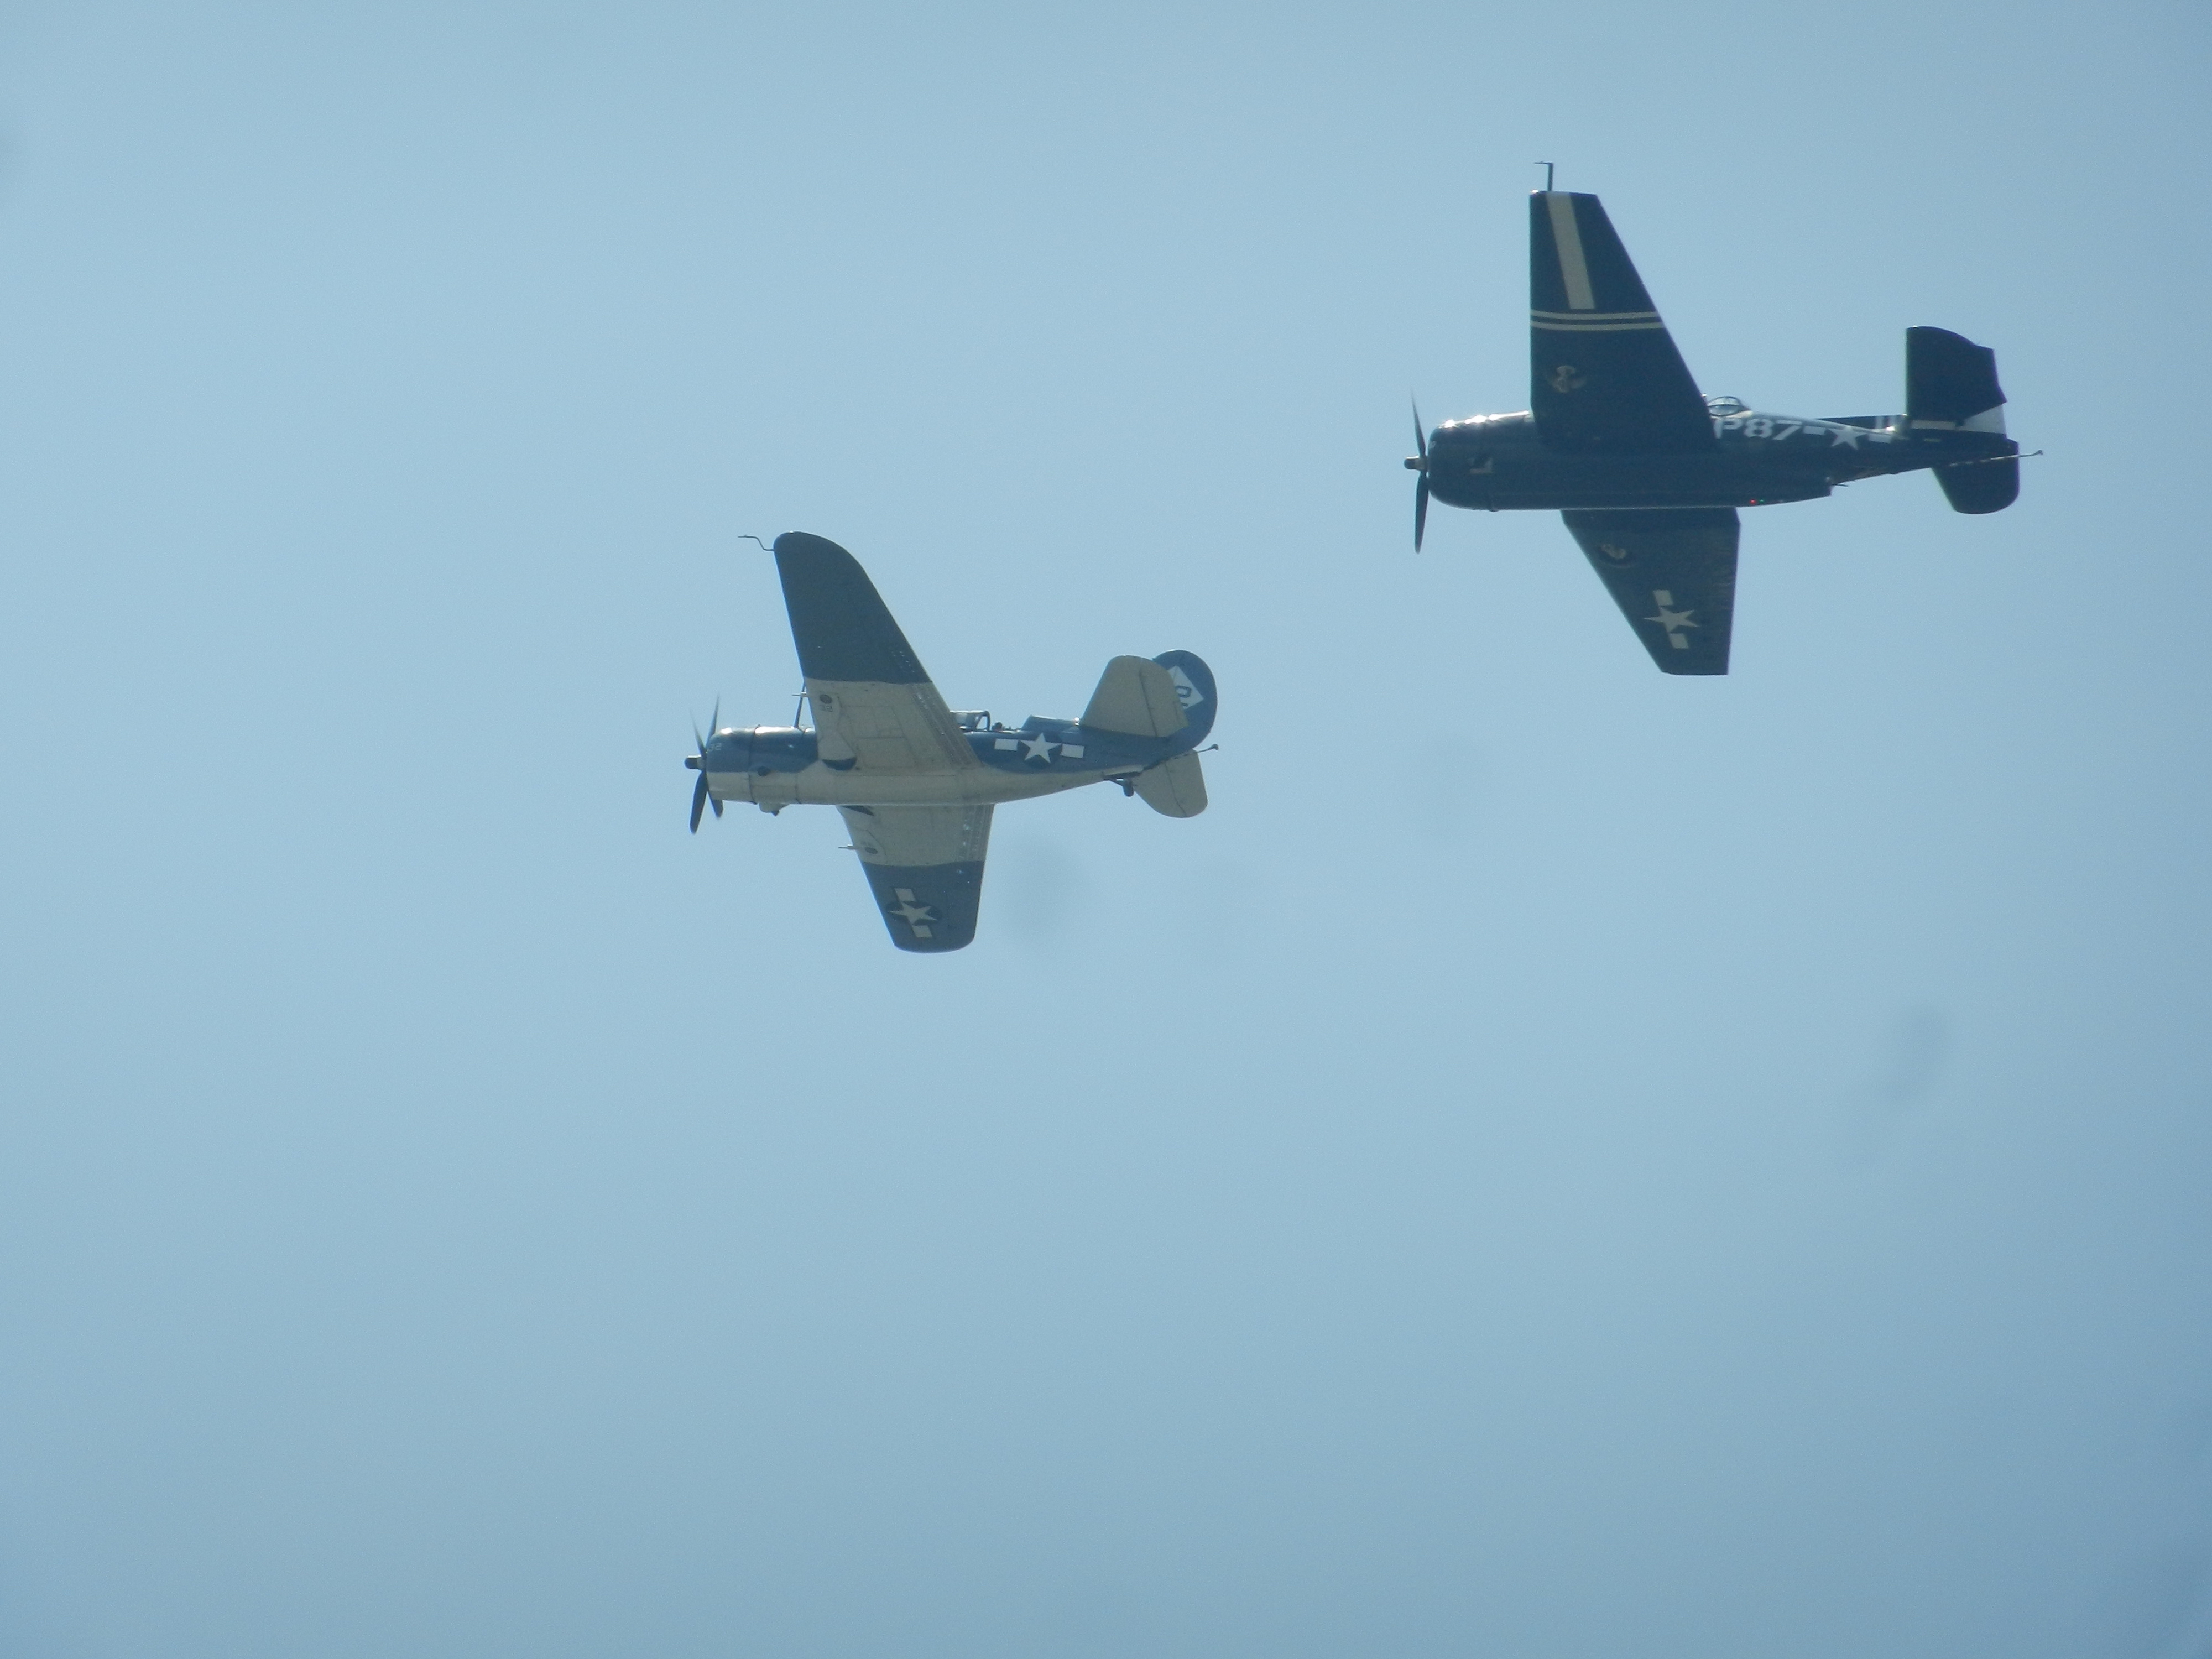 A Grumman TBM Avenger and Curtiss SB2C Helldiver. The Avenger was a carrier-based torpedo bomber that went after Japanese ships and submarines, and the Helldiver was the Navy's last diver.